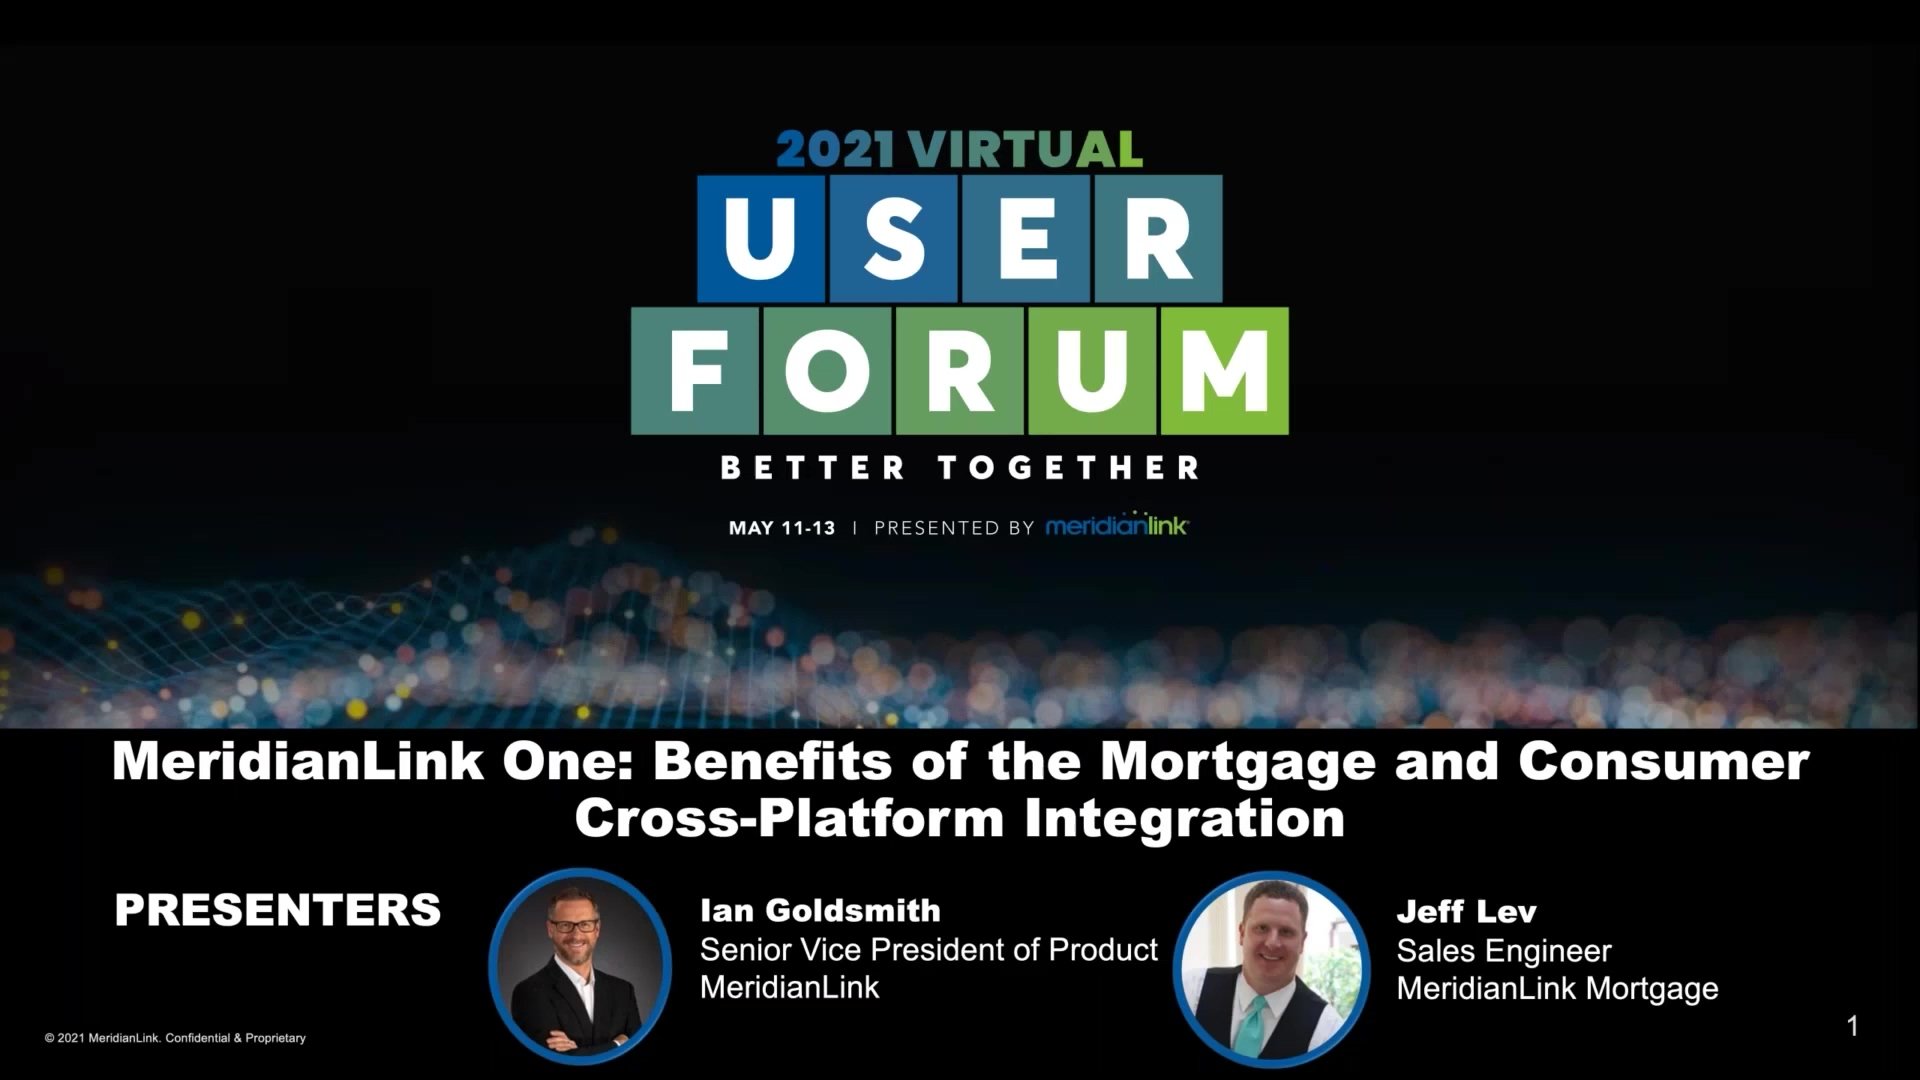 Benefits of Mortgage to Consumer Integration